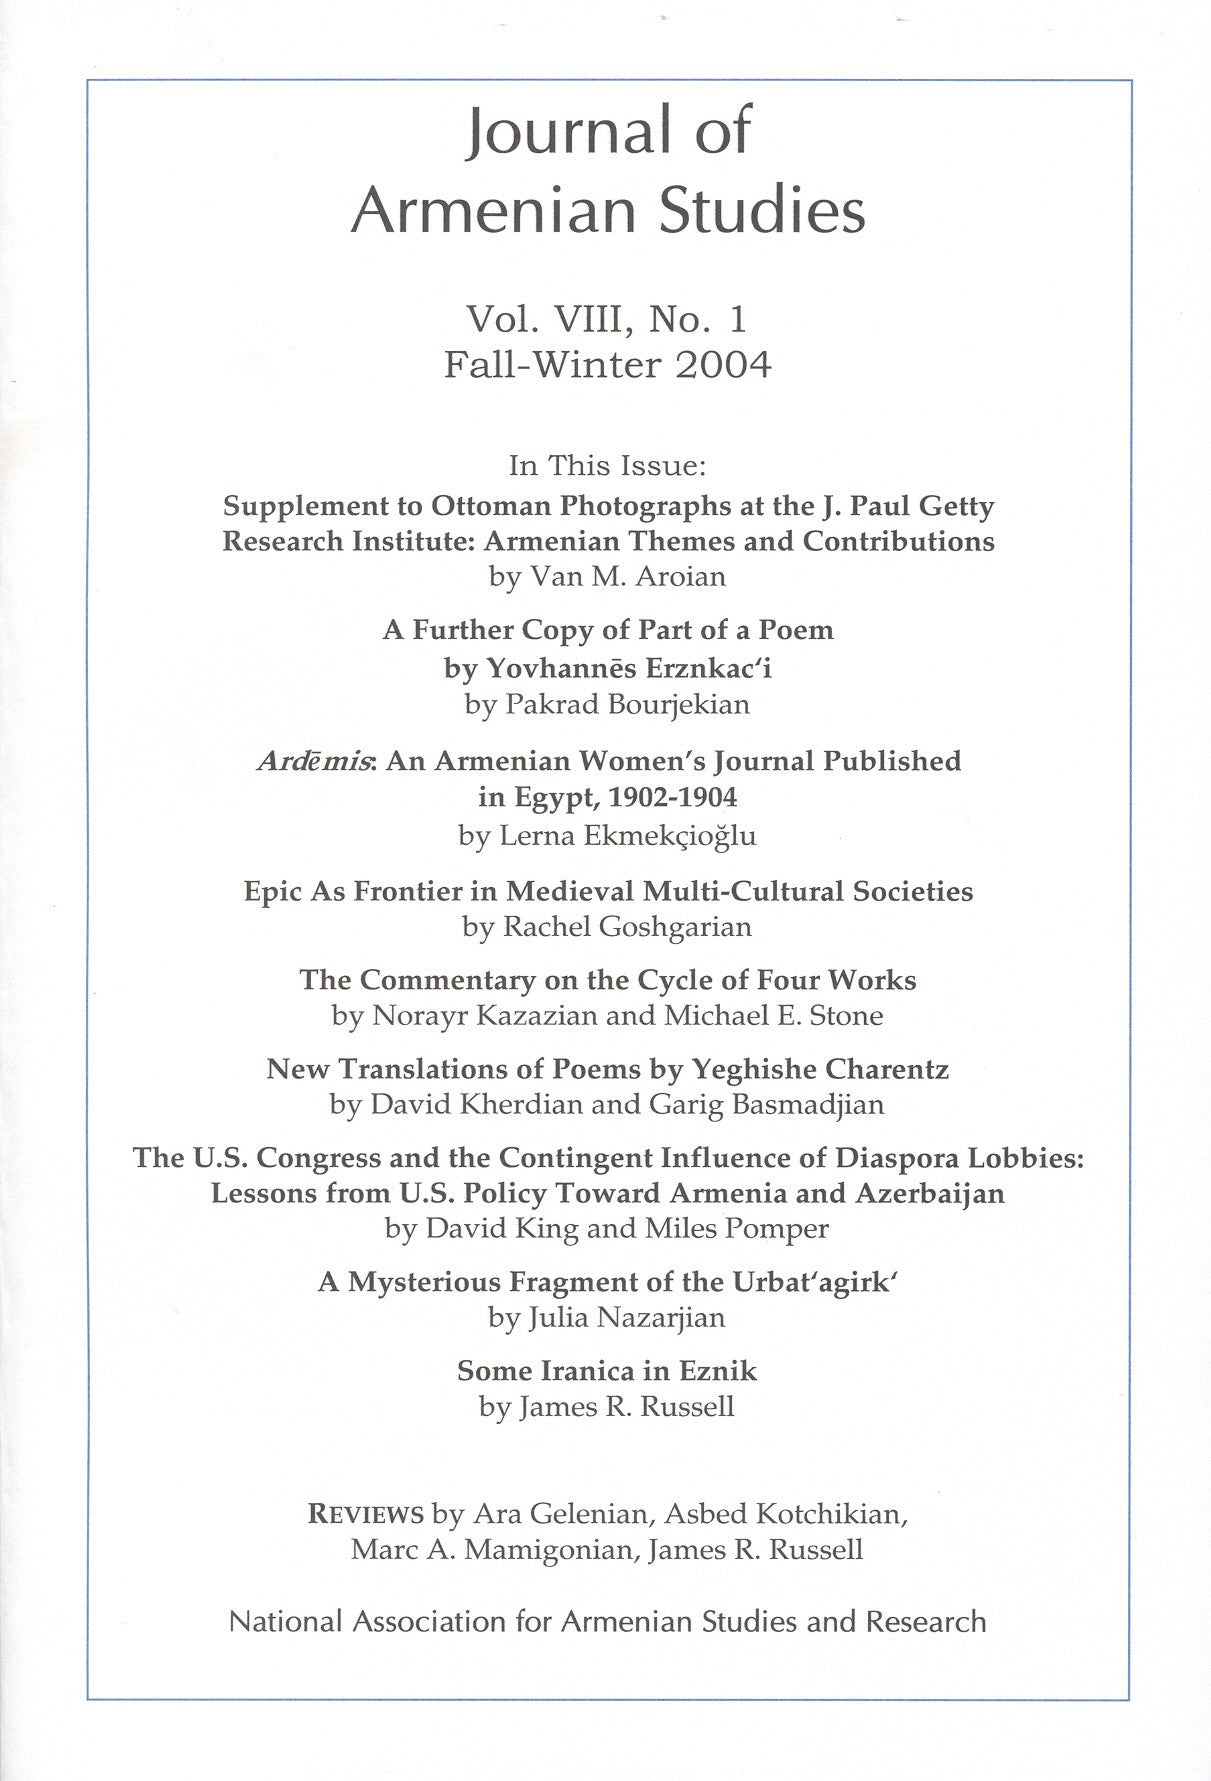 JOURNAL OF ARMENIAN STUDIES: Volume VIII, Number 1: Fall-Winter 2004